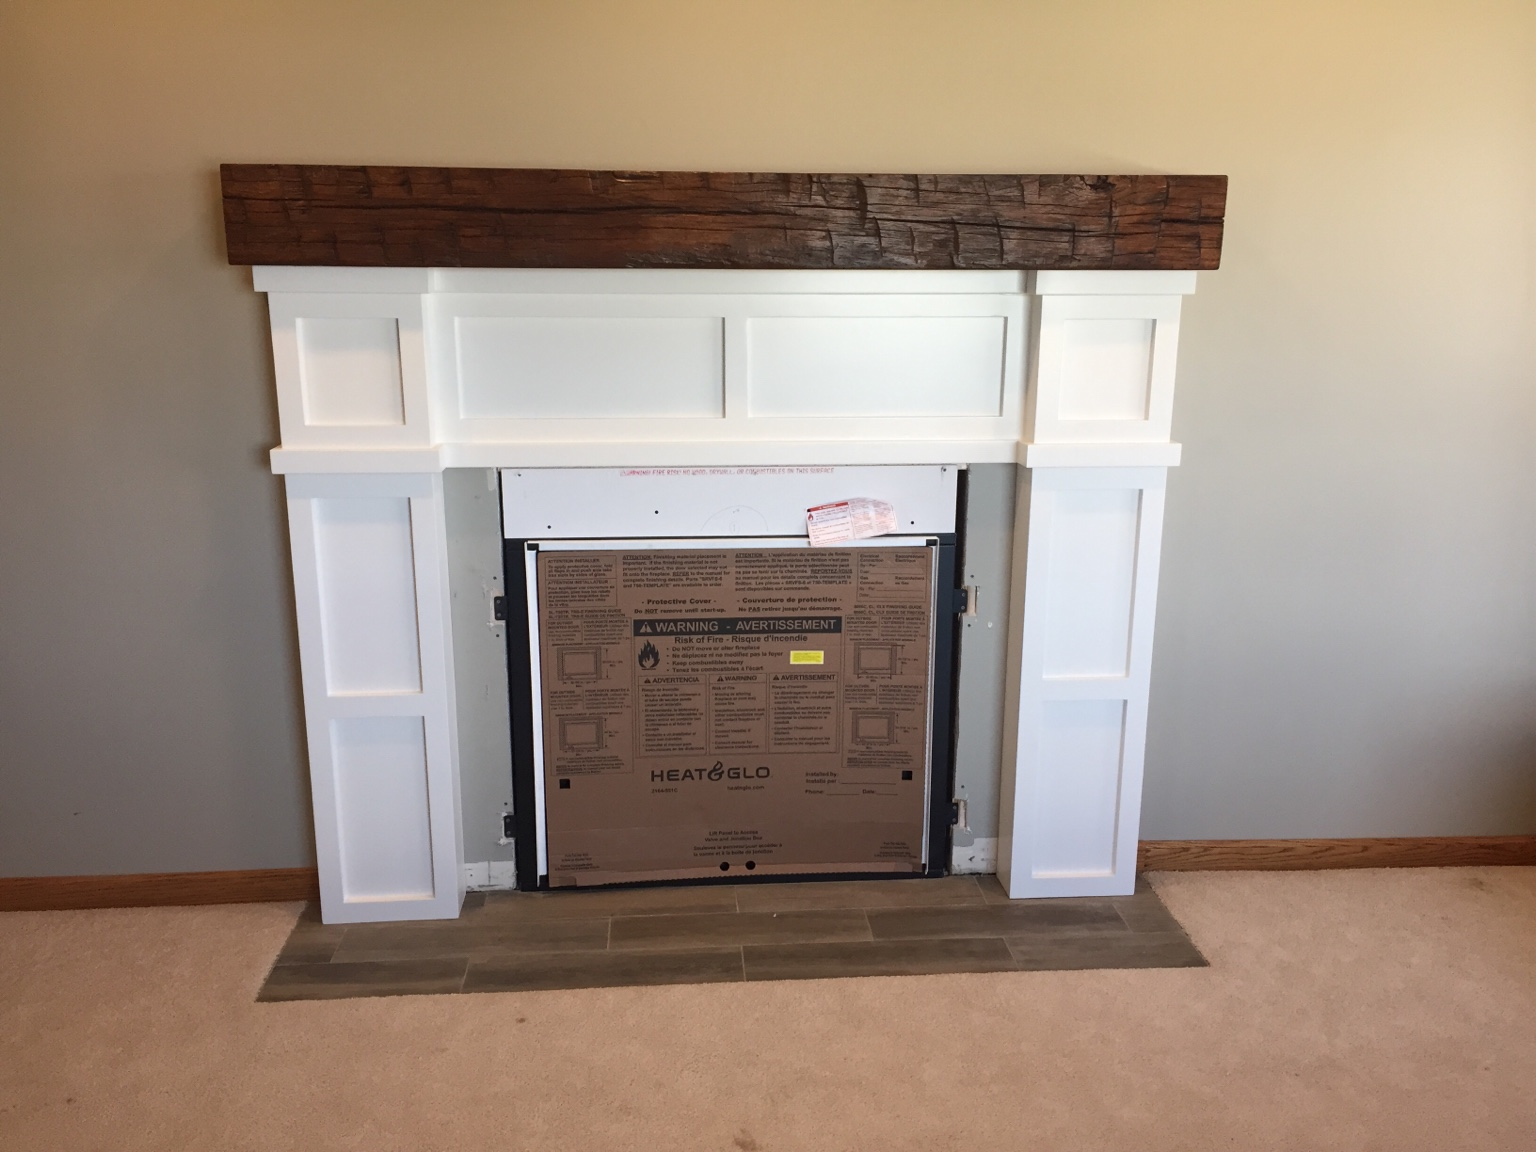 This is a gas fireplace mantel I just got done doing. HO had this metal cut out and he will have it powder coated. Is there an adhesive you would recommend for attaching it?